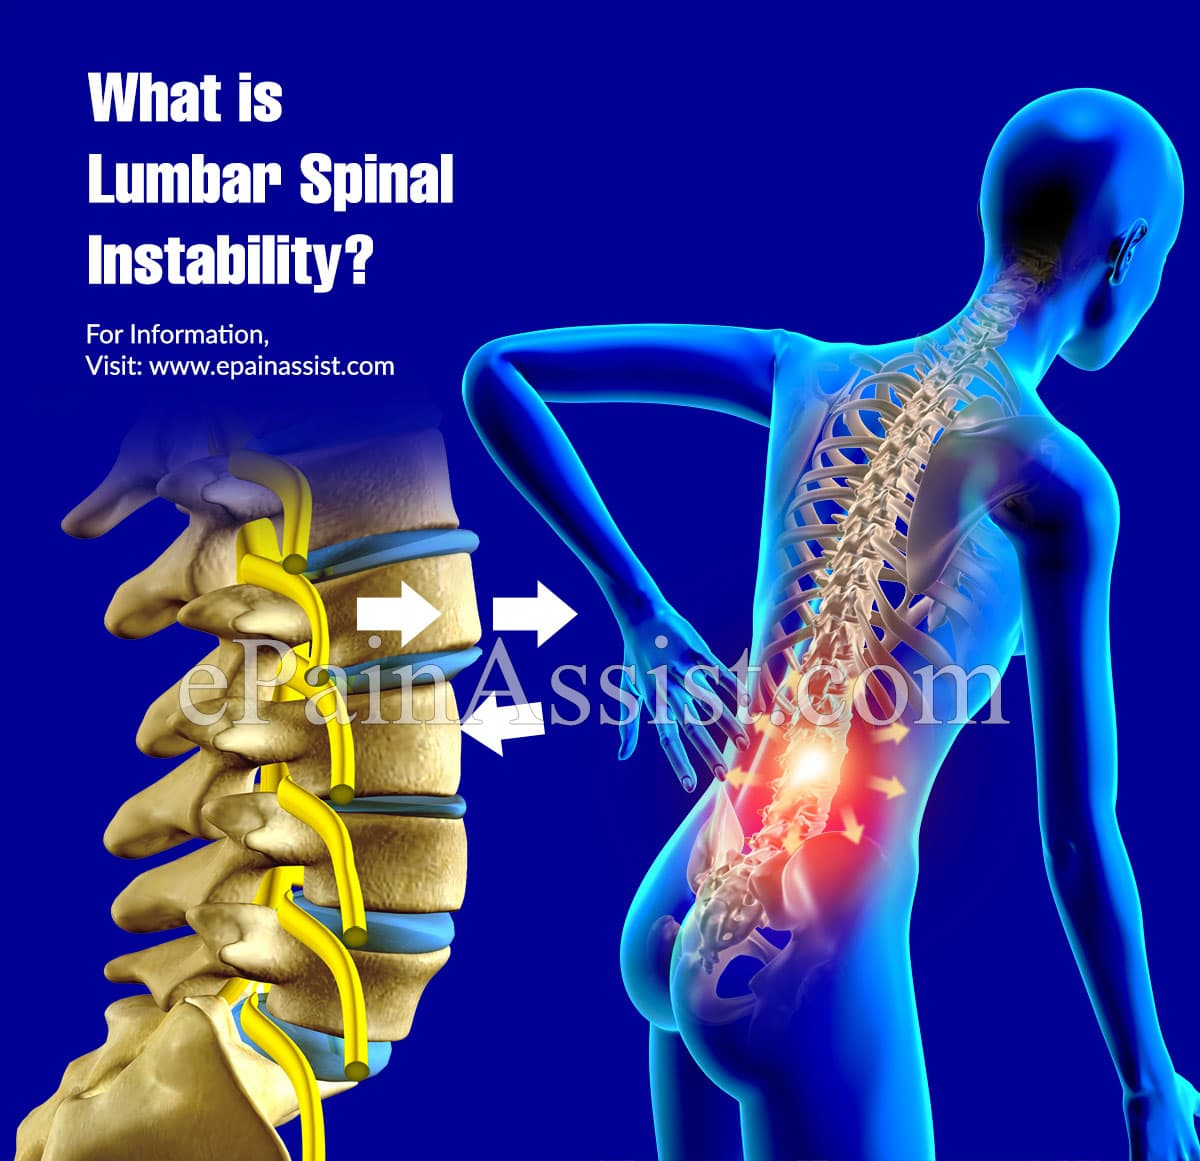 What is Lumbar Spinal Instability?